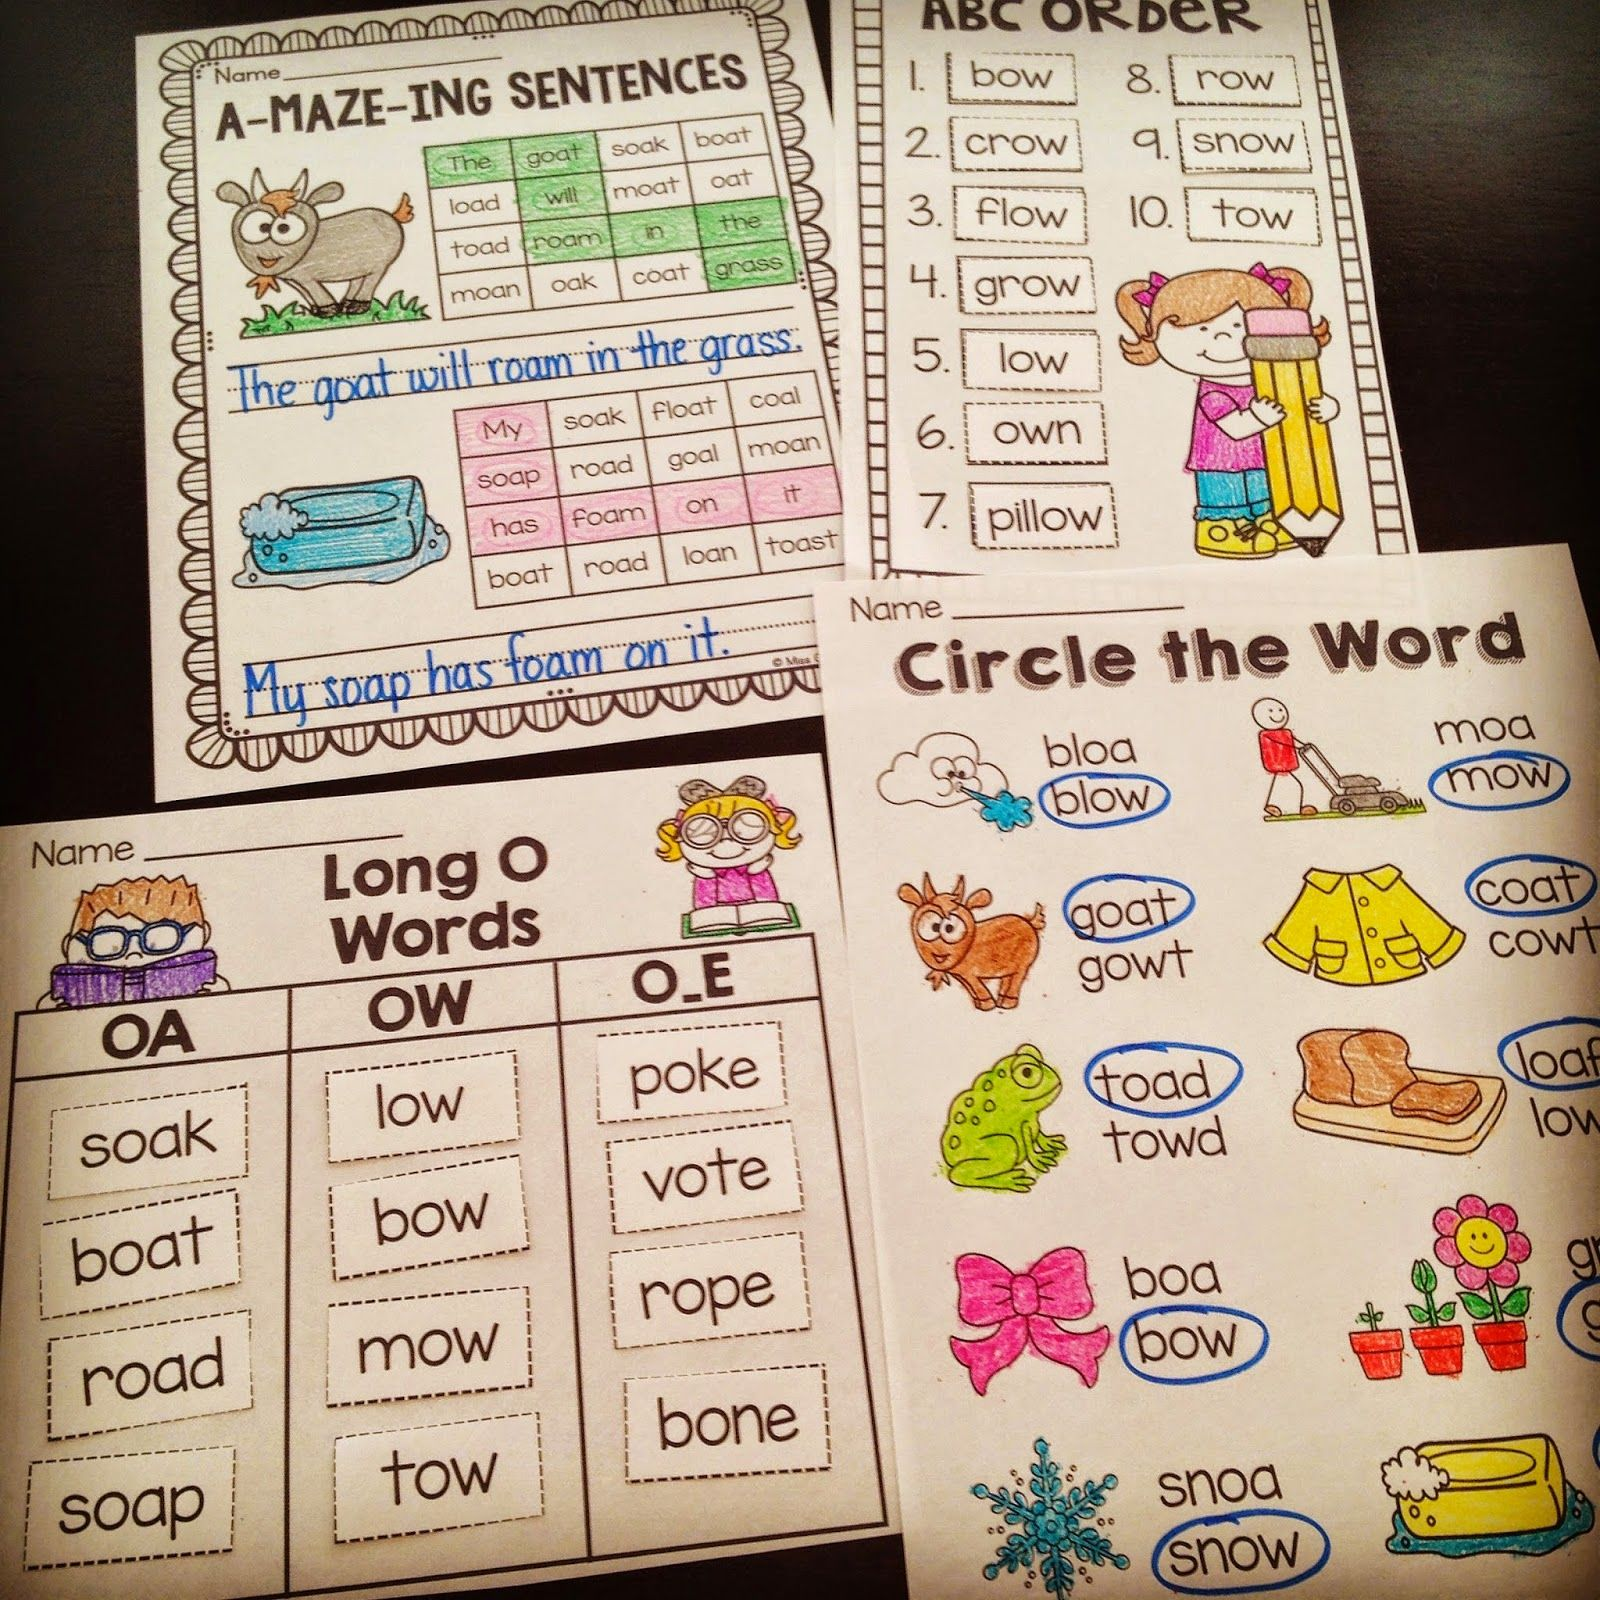 Awesome Oa Ow Worksheets And Activities To Teach The Long